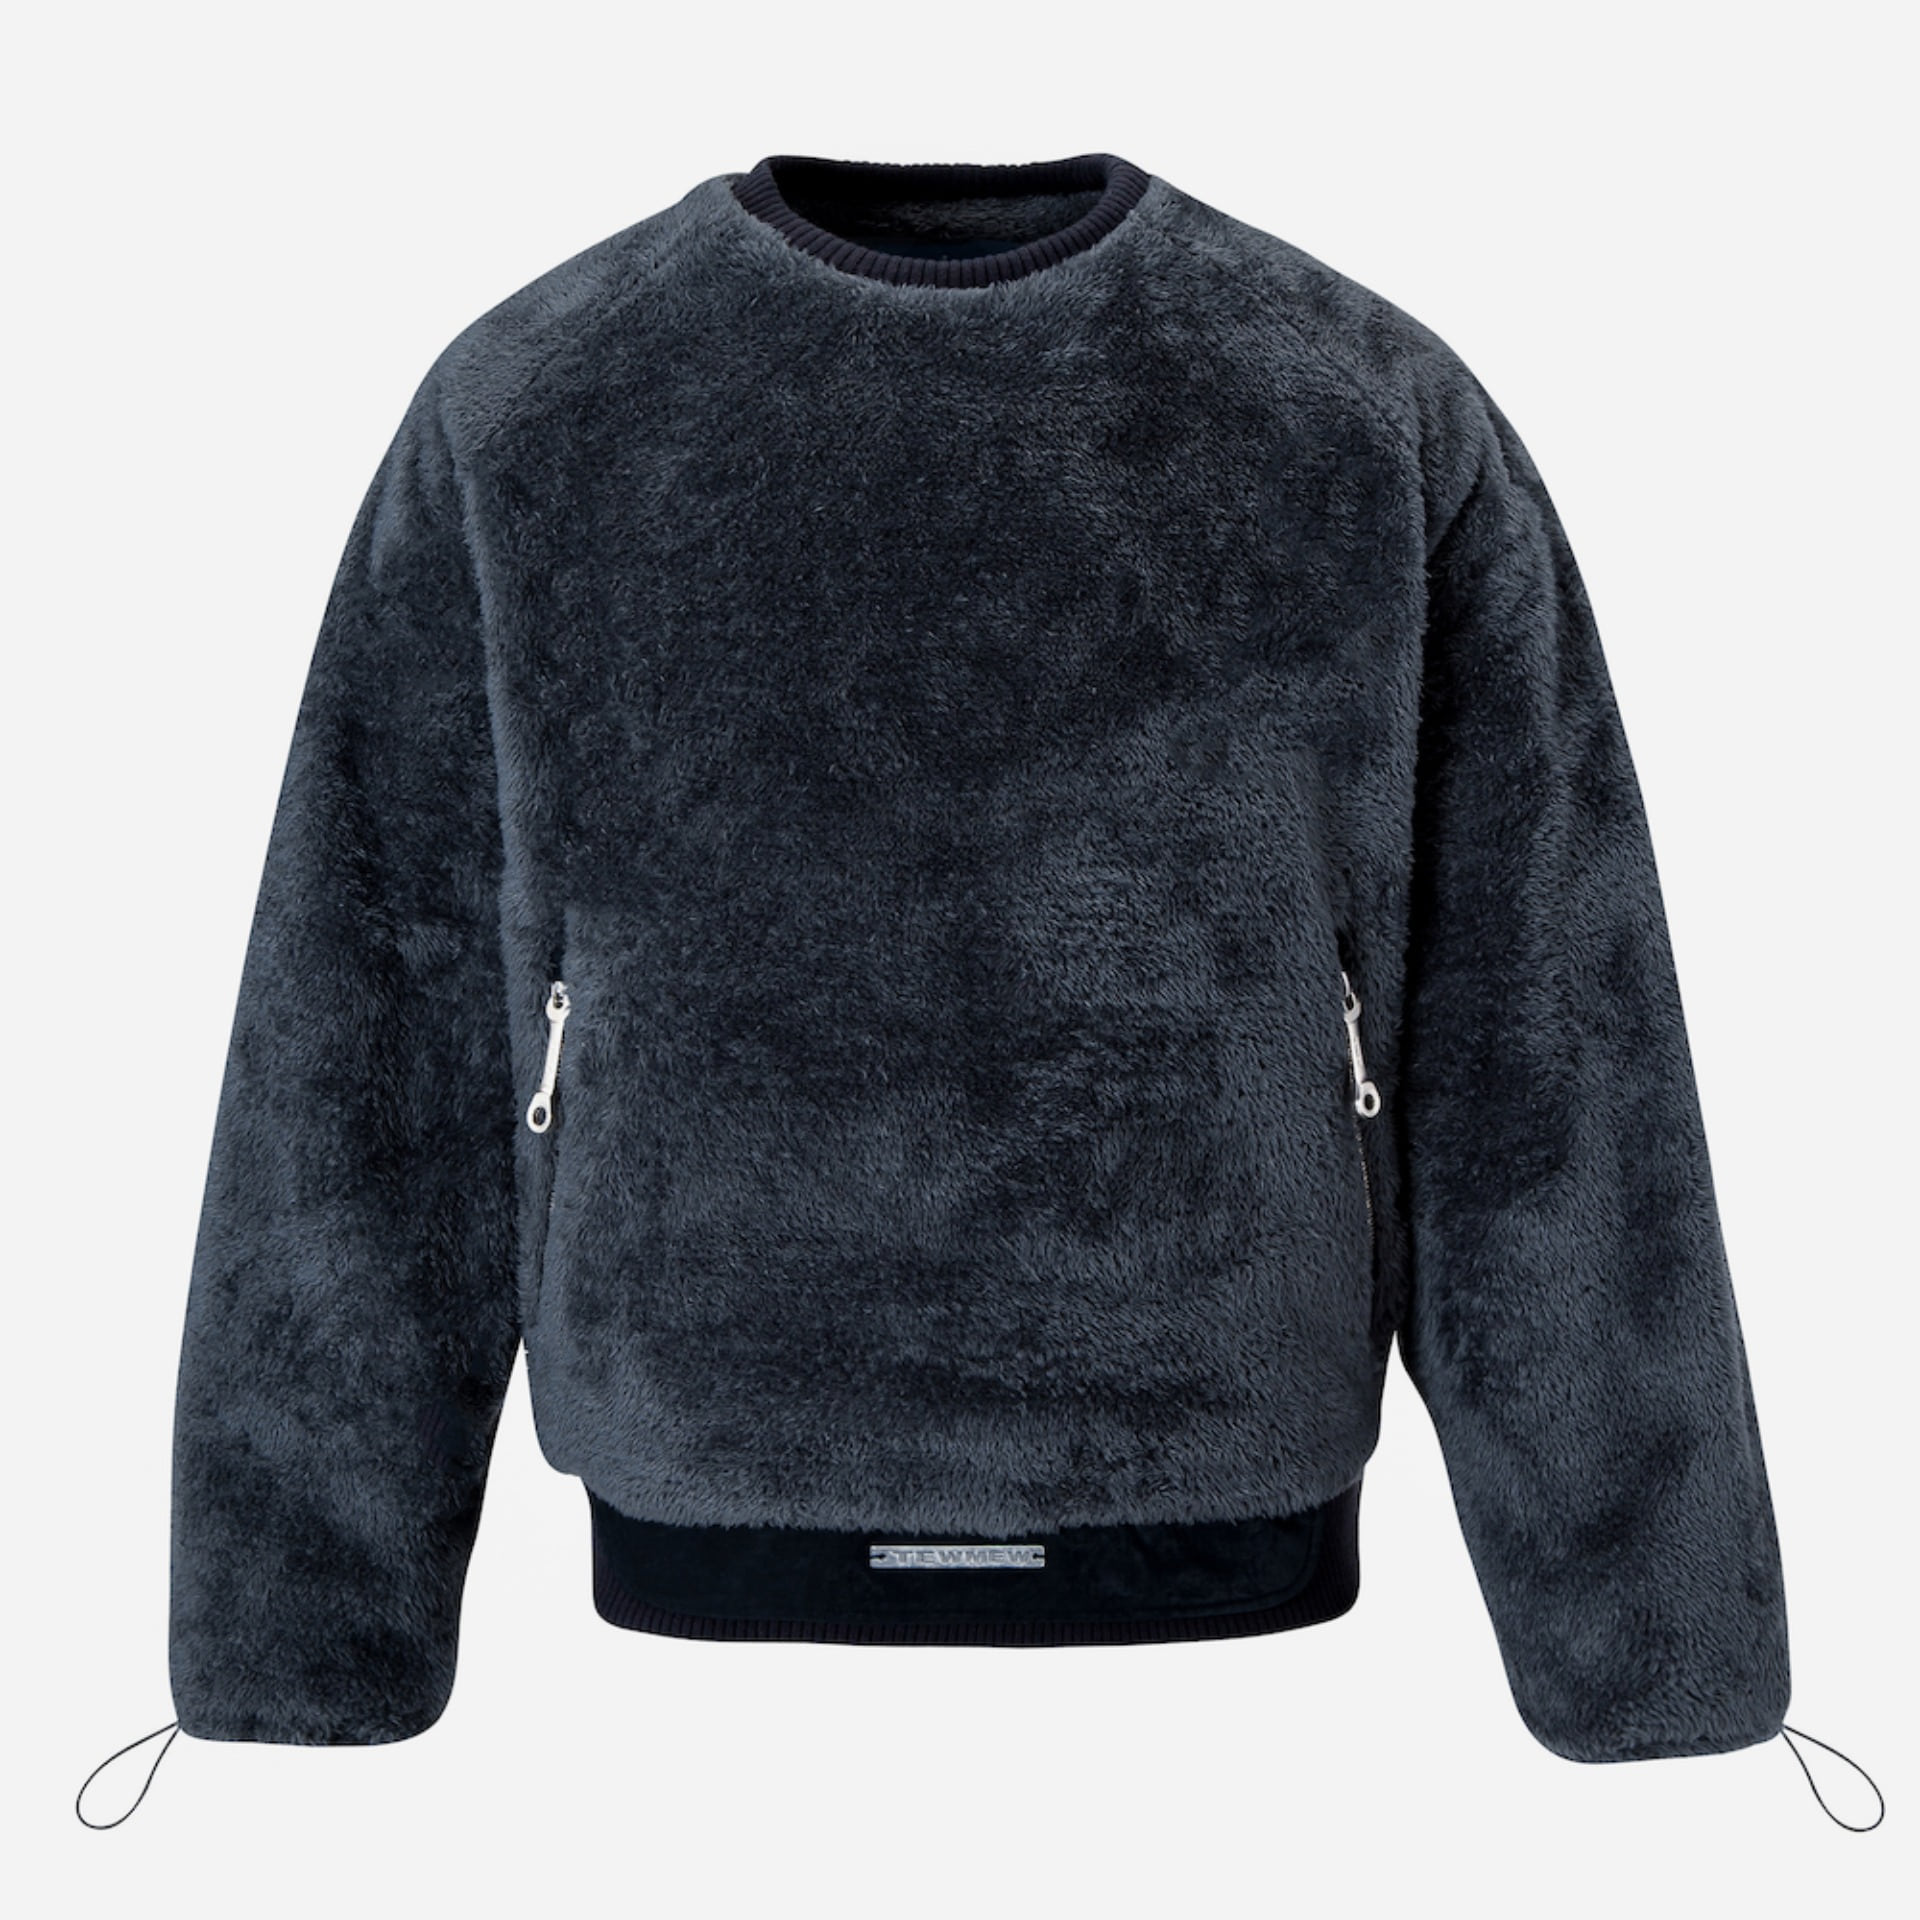 GRIZZLY PULLOVER Ver 2.0 (Navy)